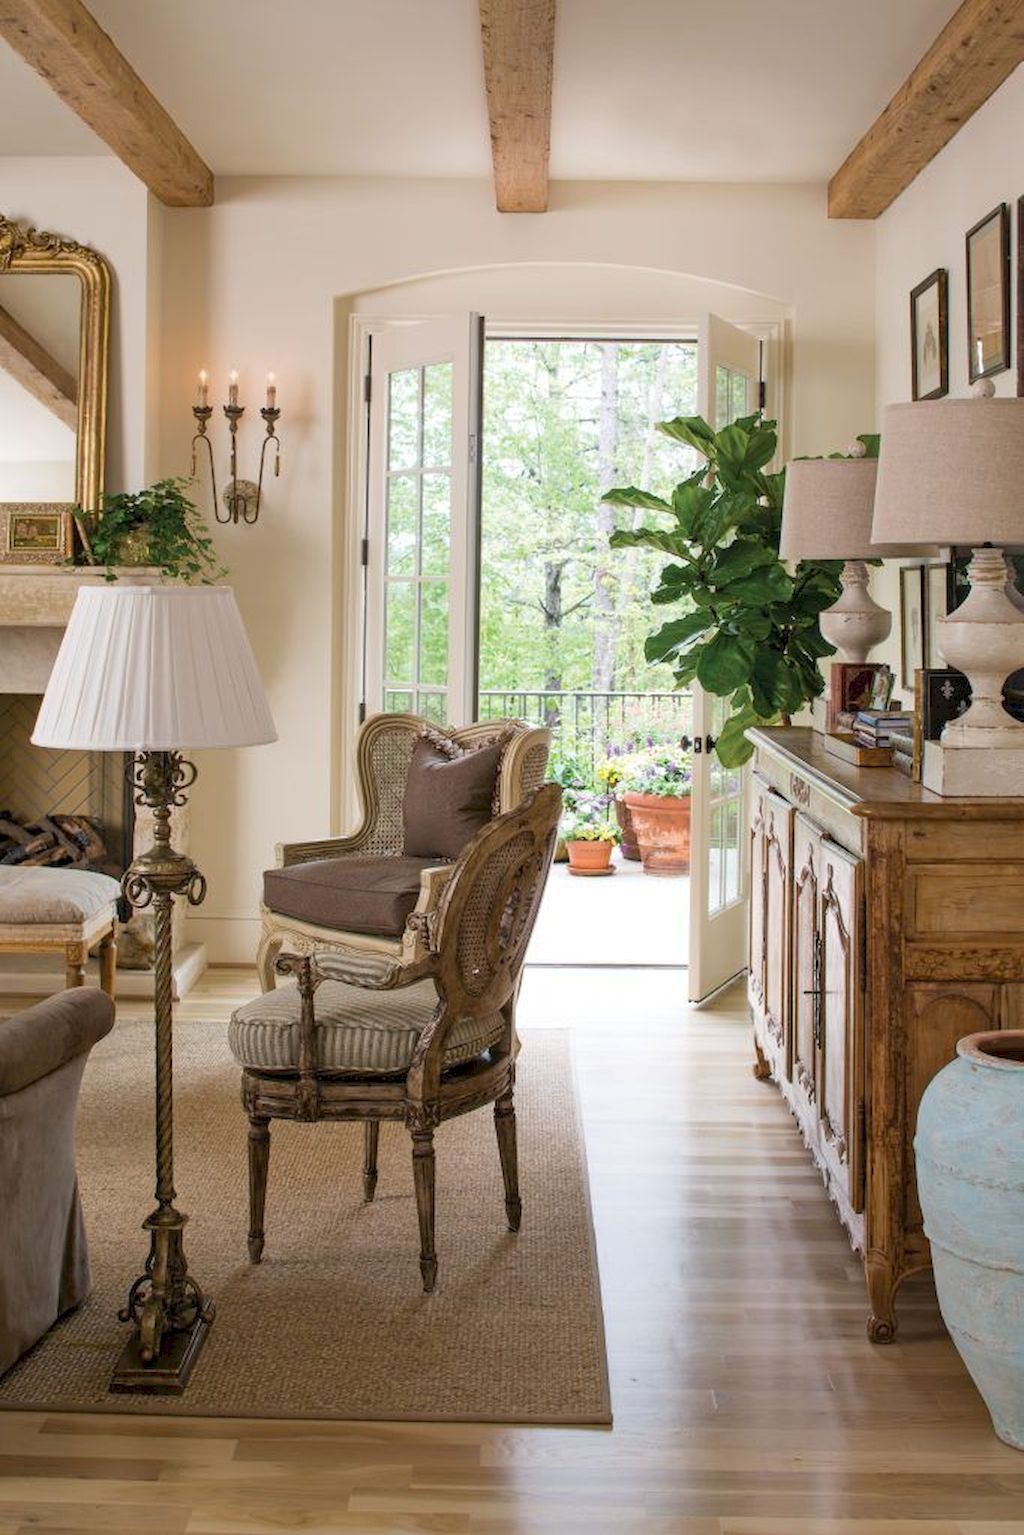 Awesome 60 Fancy French Country Living Room Decor Ideas Https Homespecia French Country Decorating Living Room French Country Living Room Country Living Room